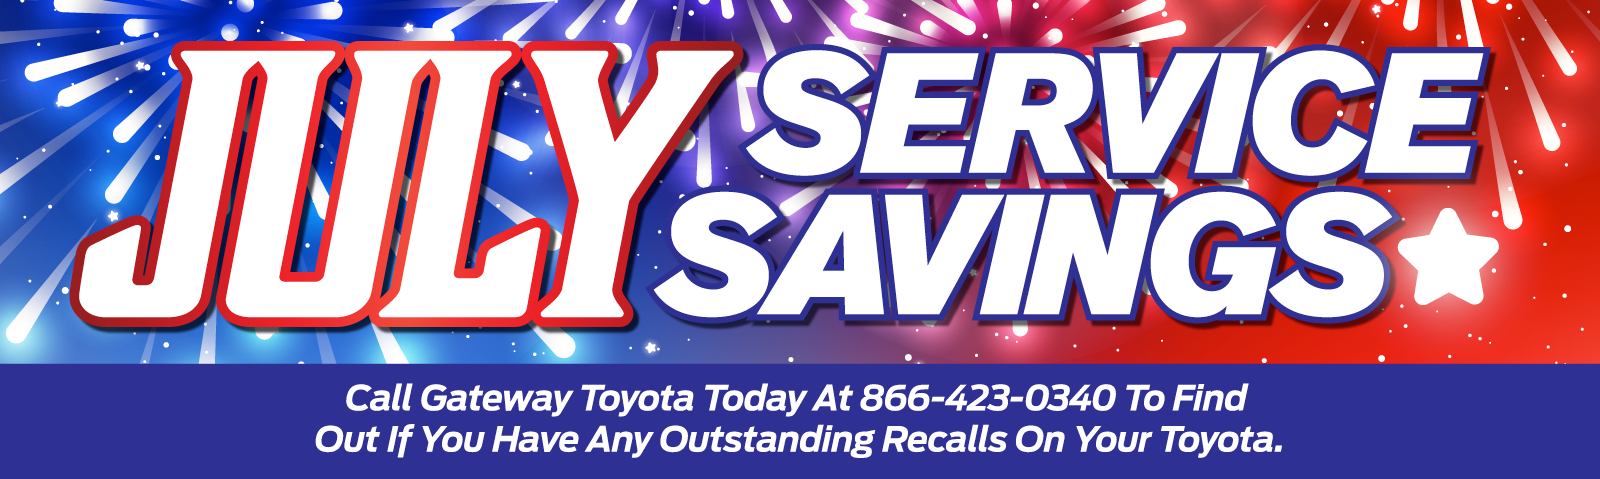 Call Gateway Toyota Today At 866-423-0340 To Find Out If You Have Any Outstanding Recalls On Your Toyota.